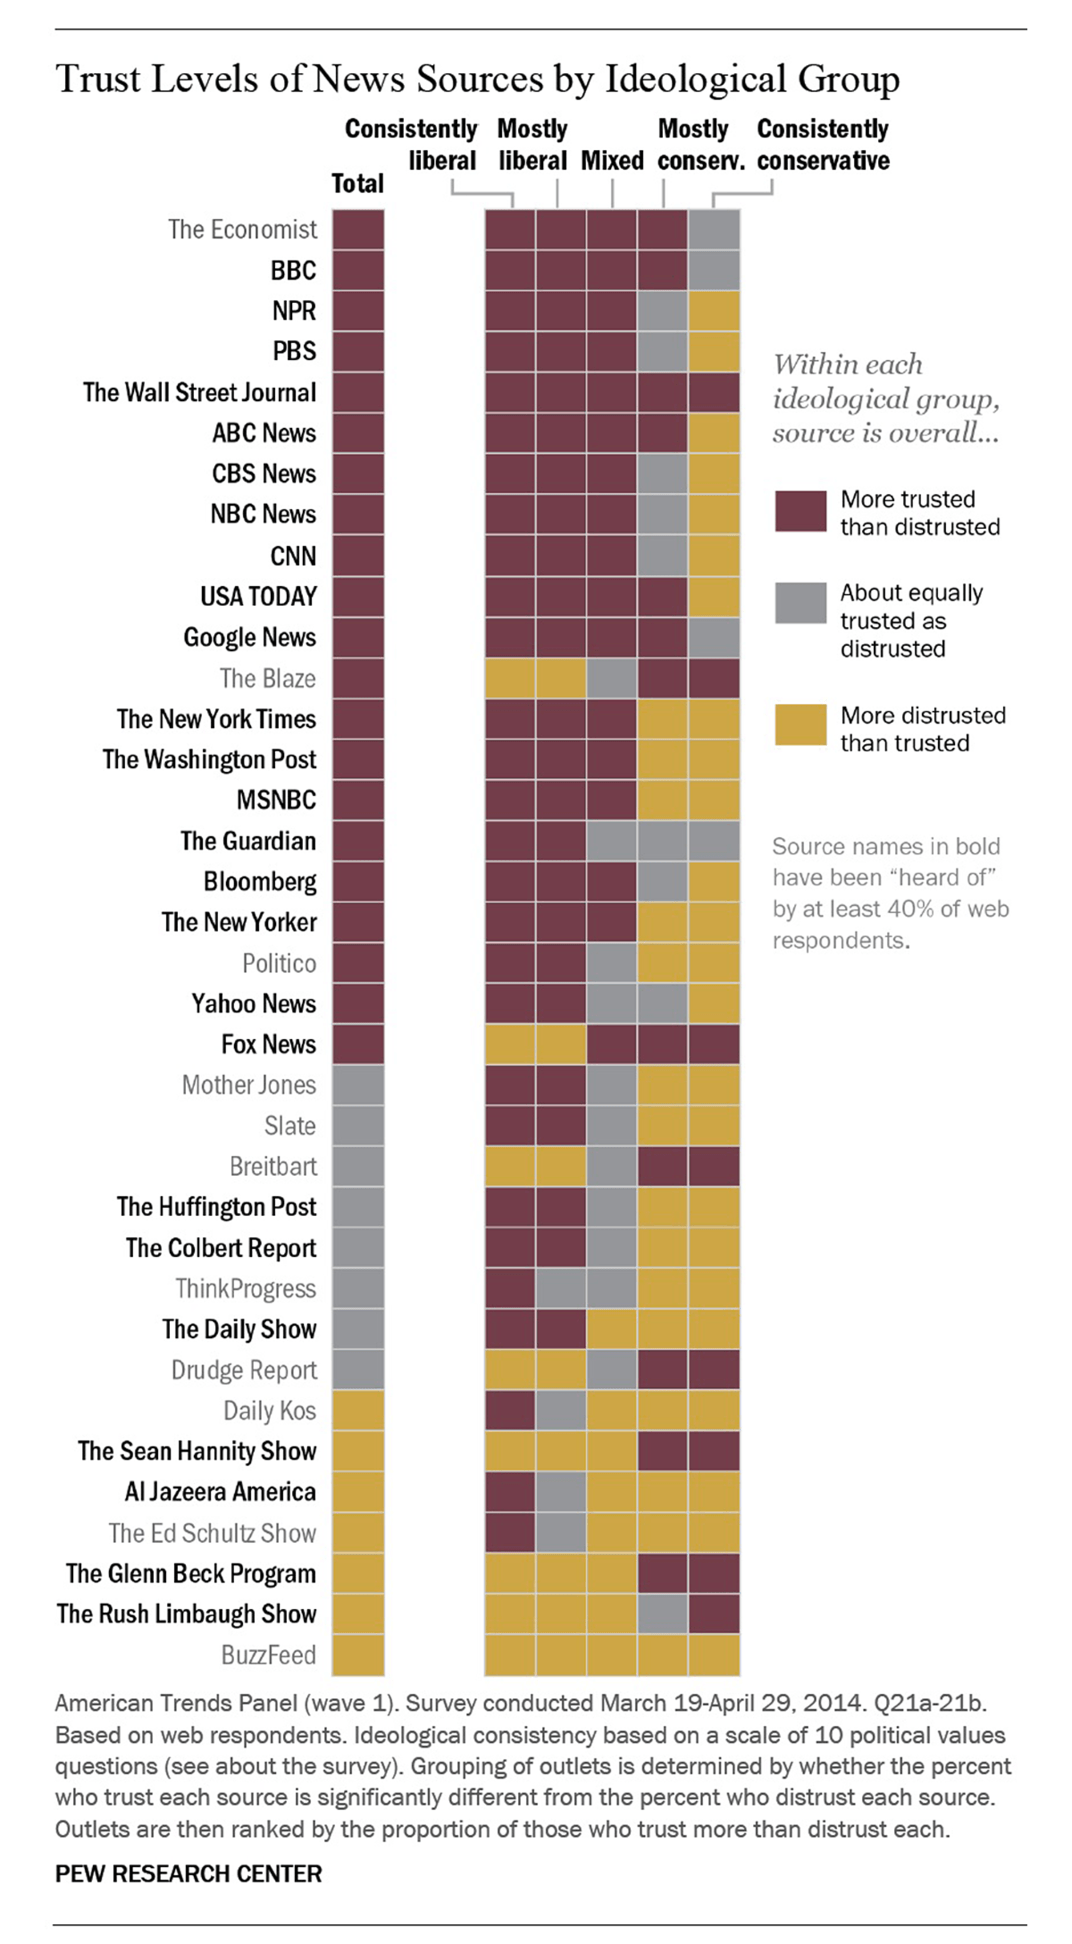 PEW Research Media Trust Levels